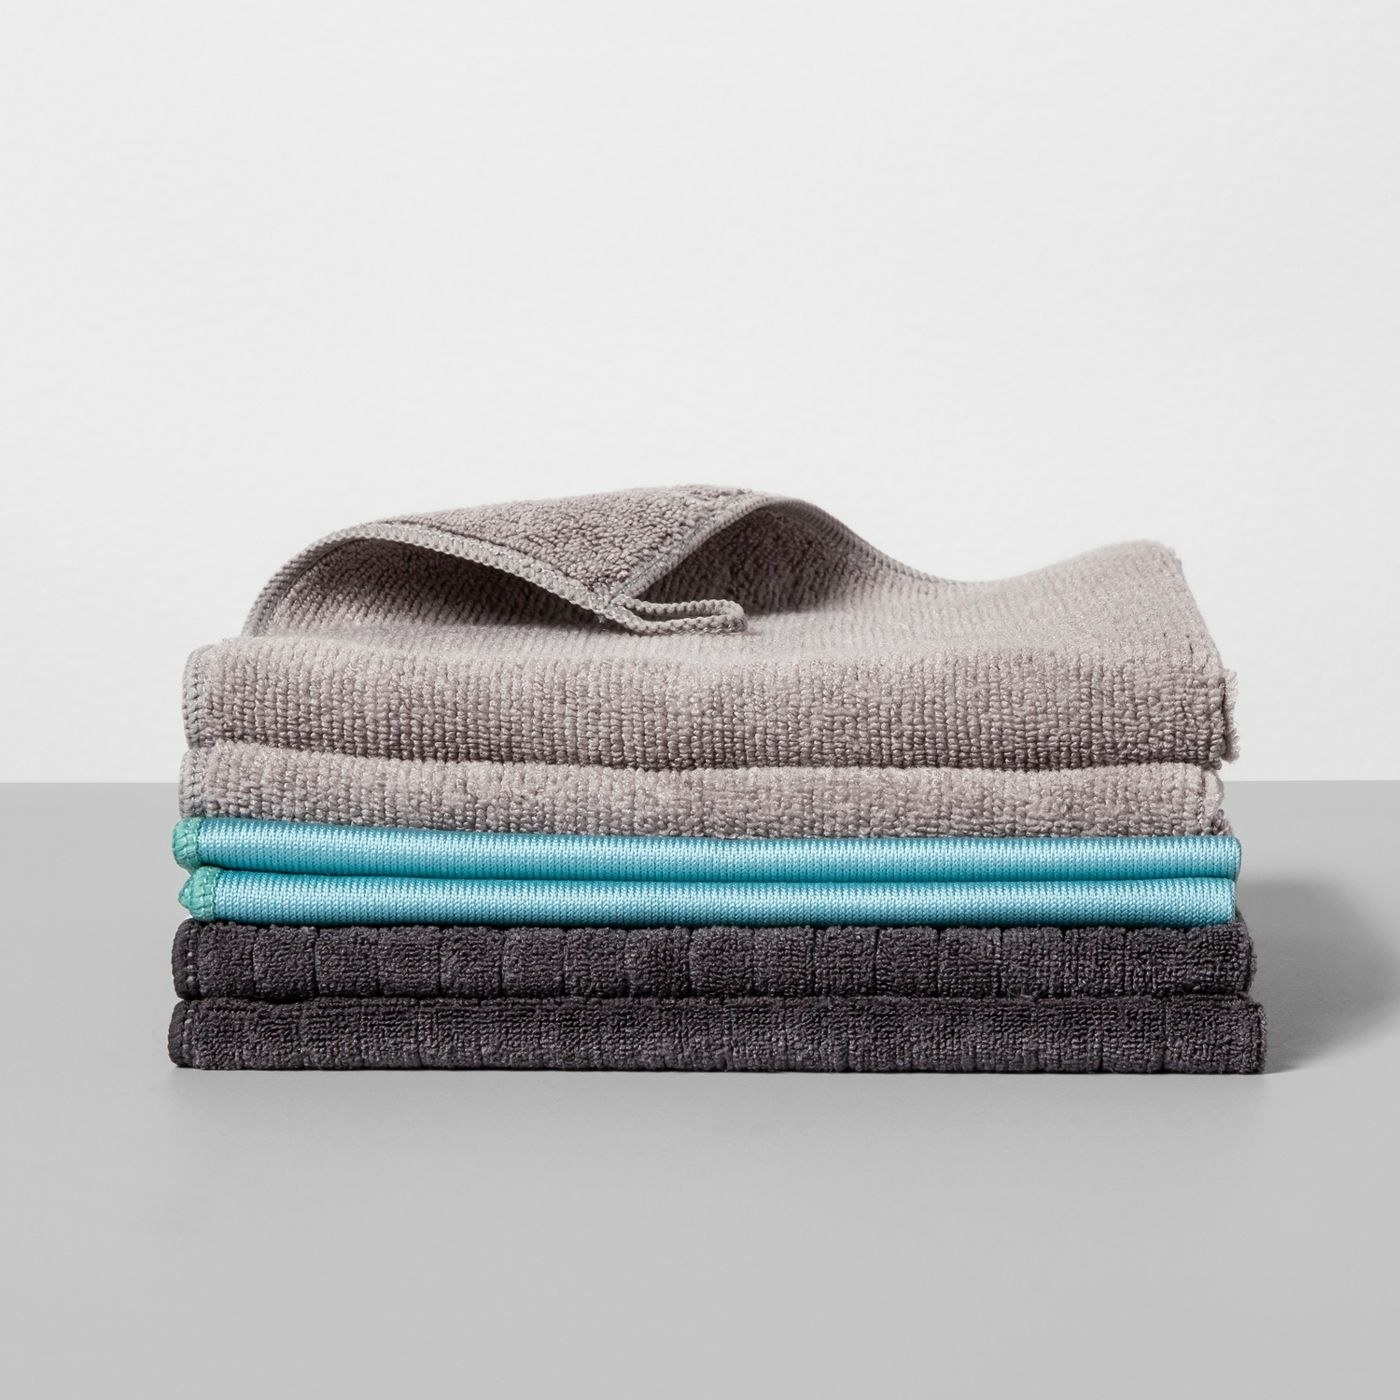 Stack of gray, blue, and charcoal dust cloths